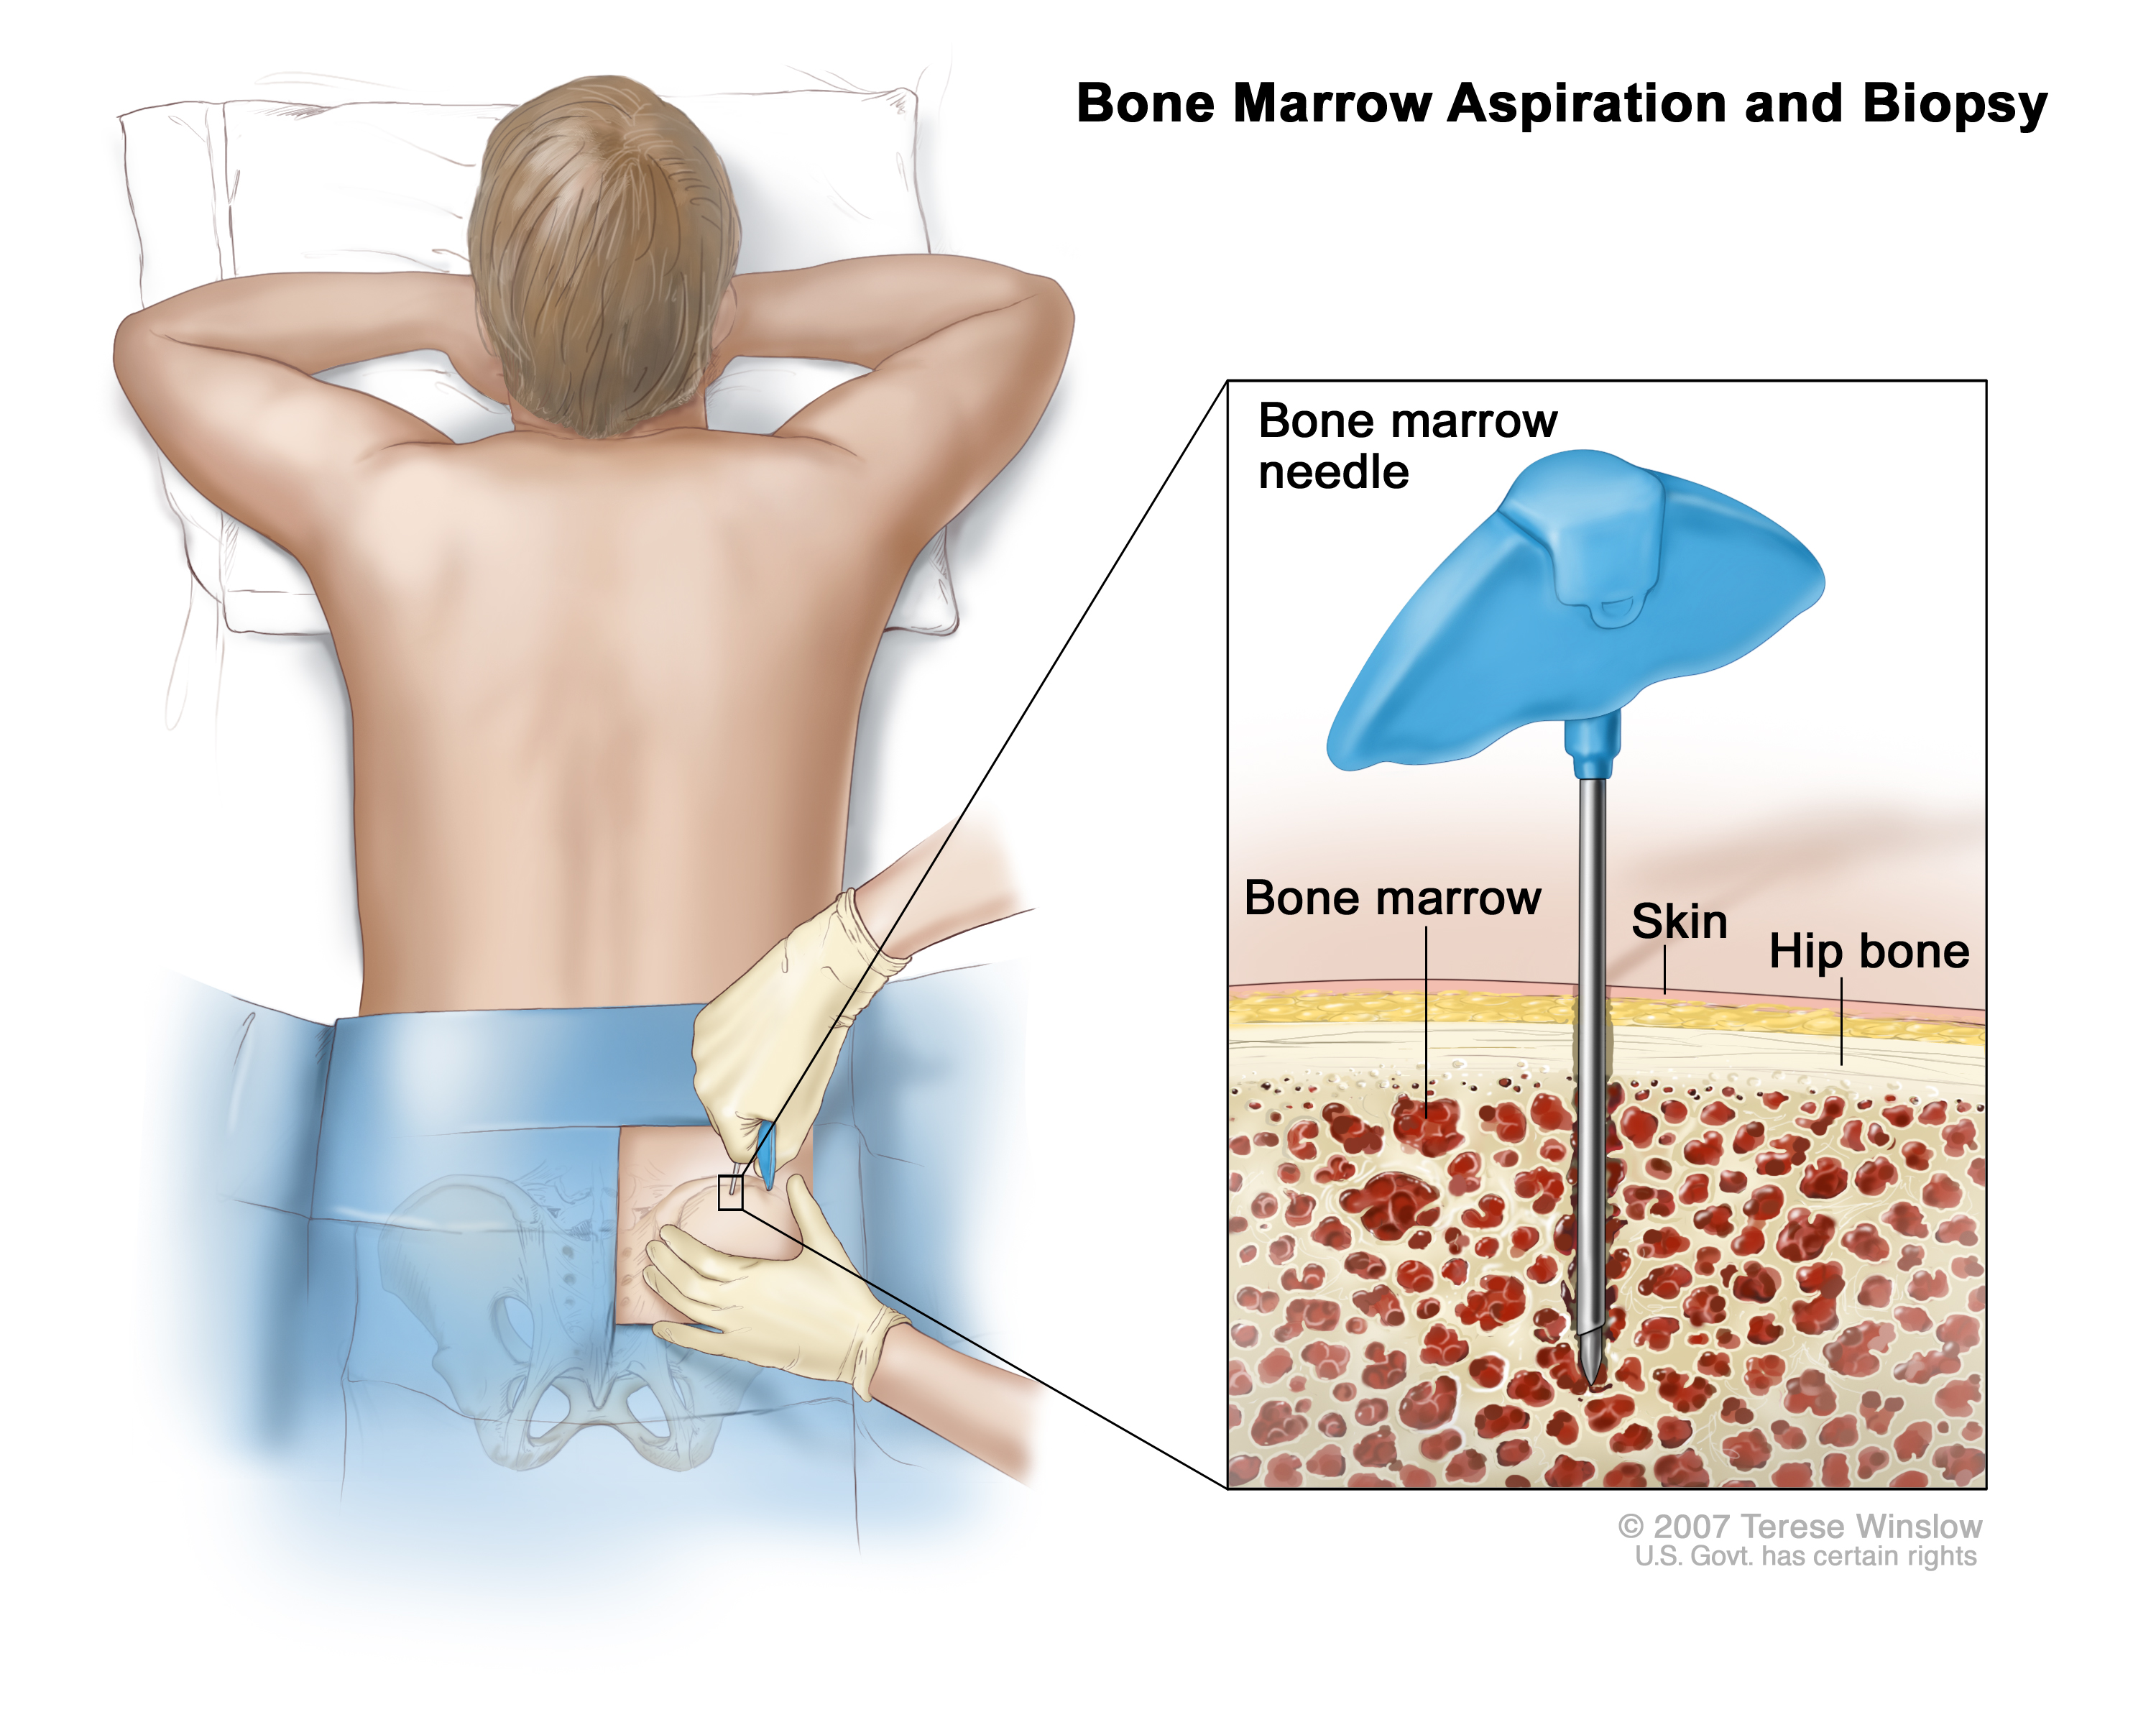 Bone marrow aspiration and biopsy; drawing shows a patient lying face ...